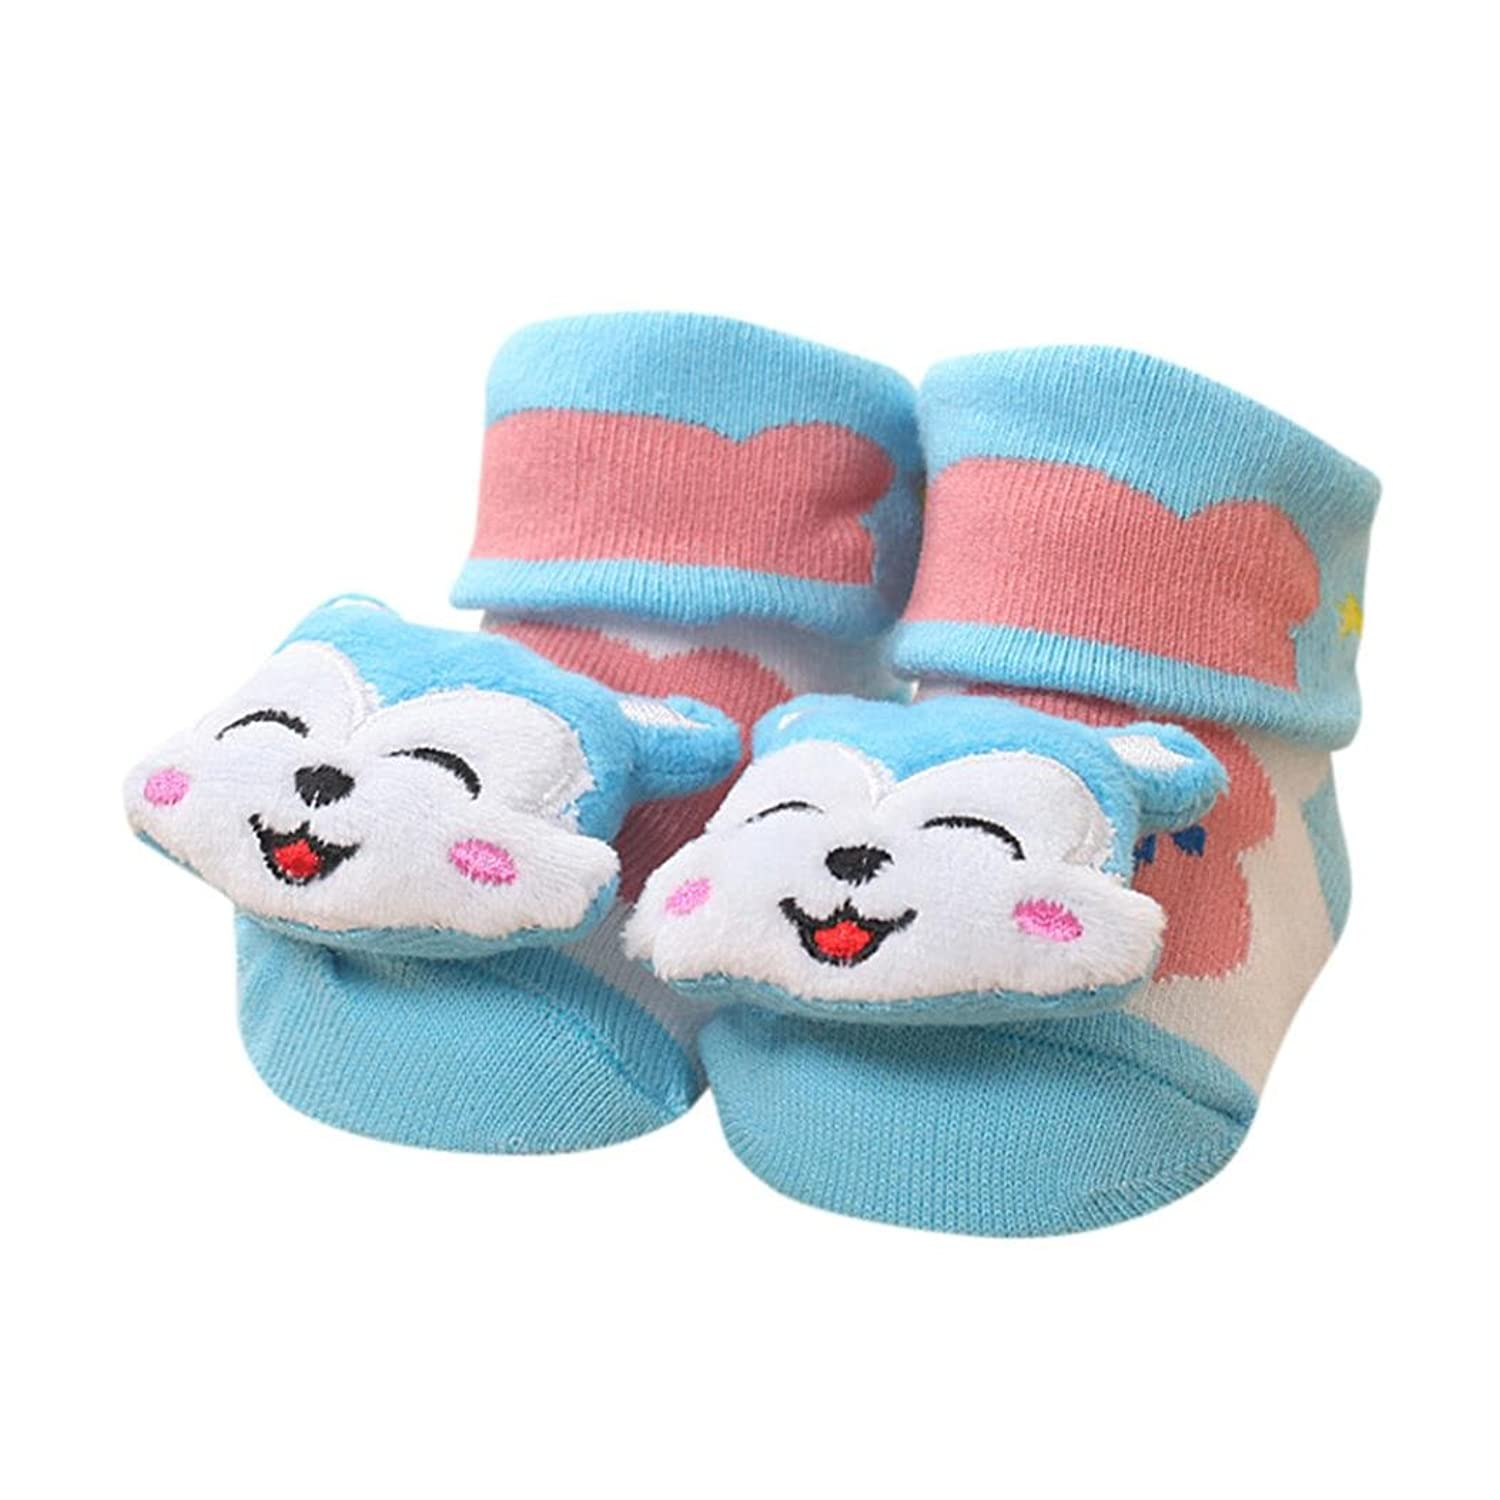 Cartoon Newborn Baby Girls Boys Anti-Slip Socks Slipper Bell Shoes Boots